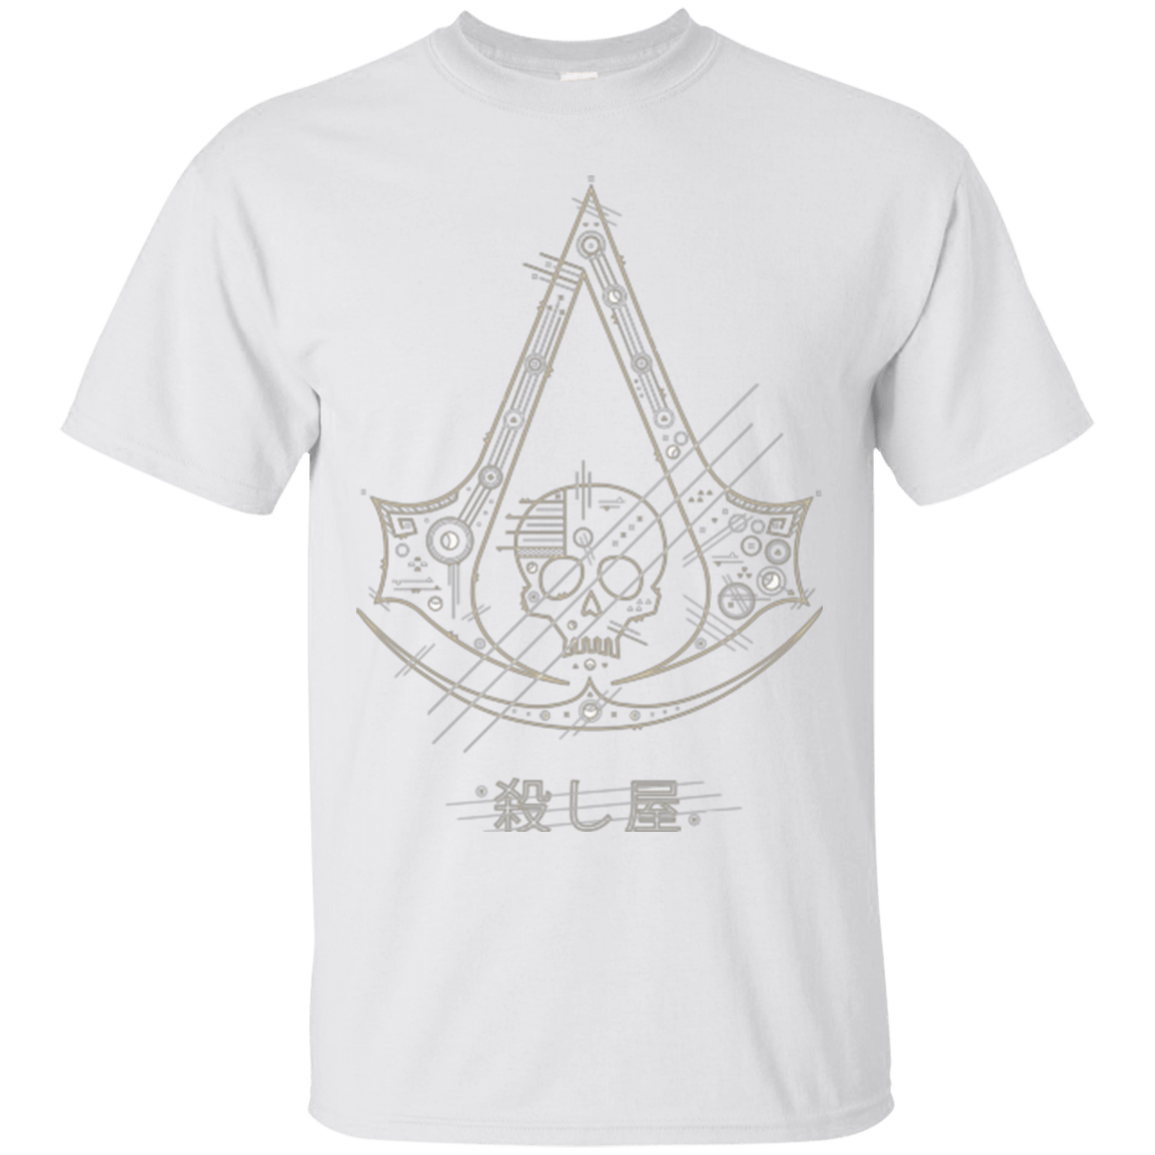 T-Shirts White / Small Tech Creed T-Shirt